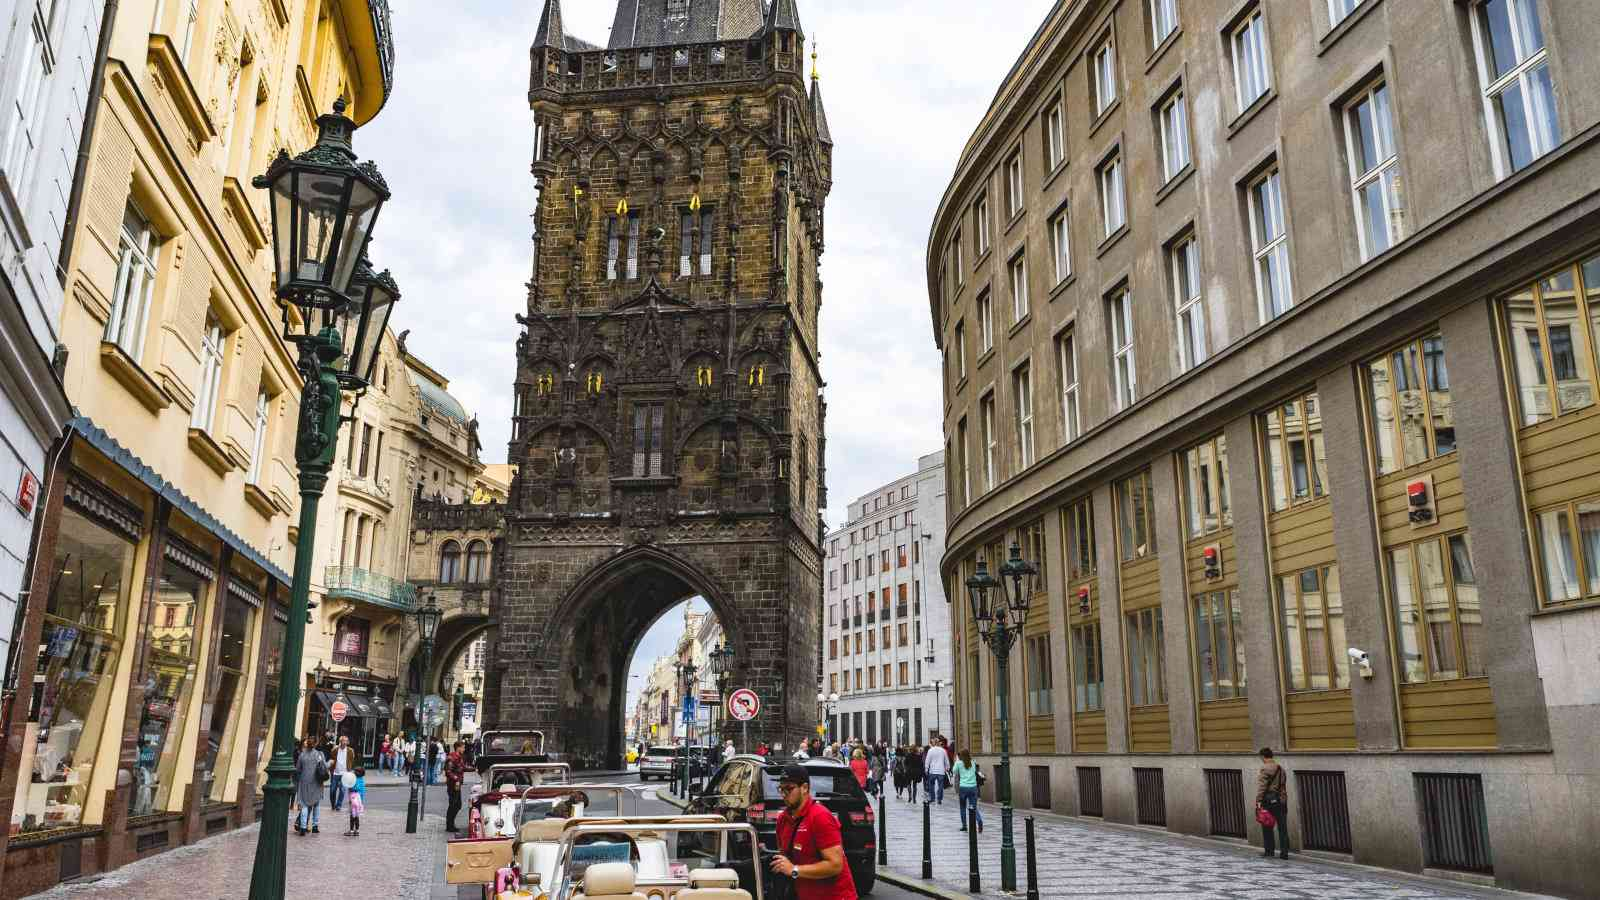 Prague is infamous for dodgy taxis so make sure you only use an official company or even Uber.